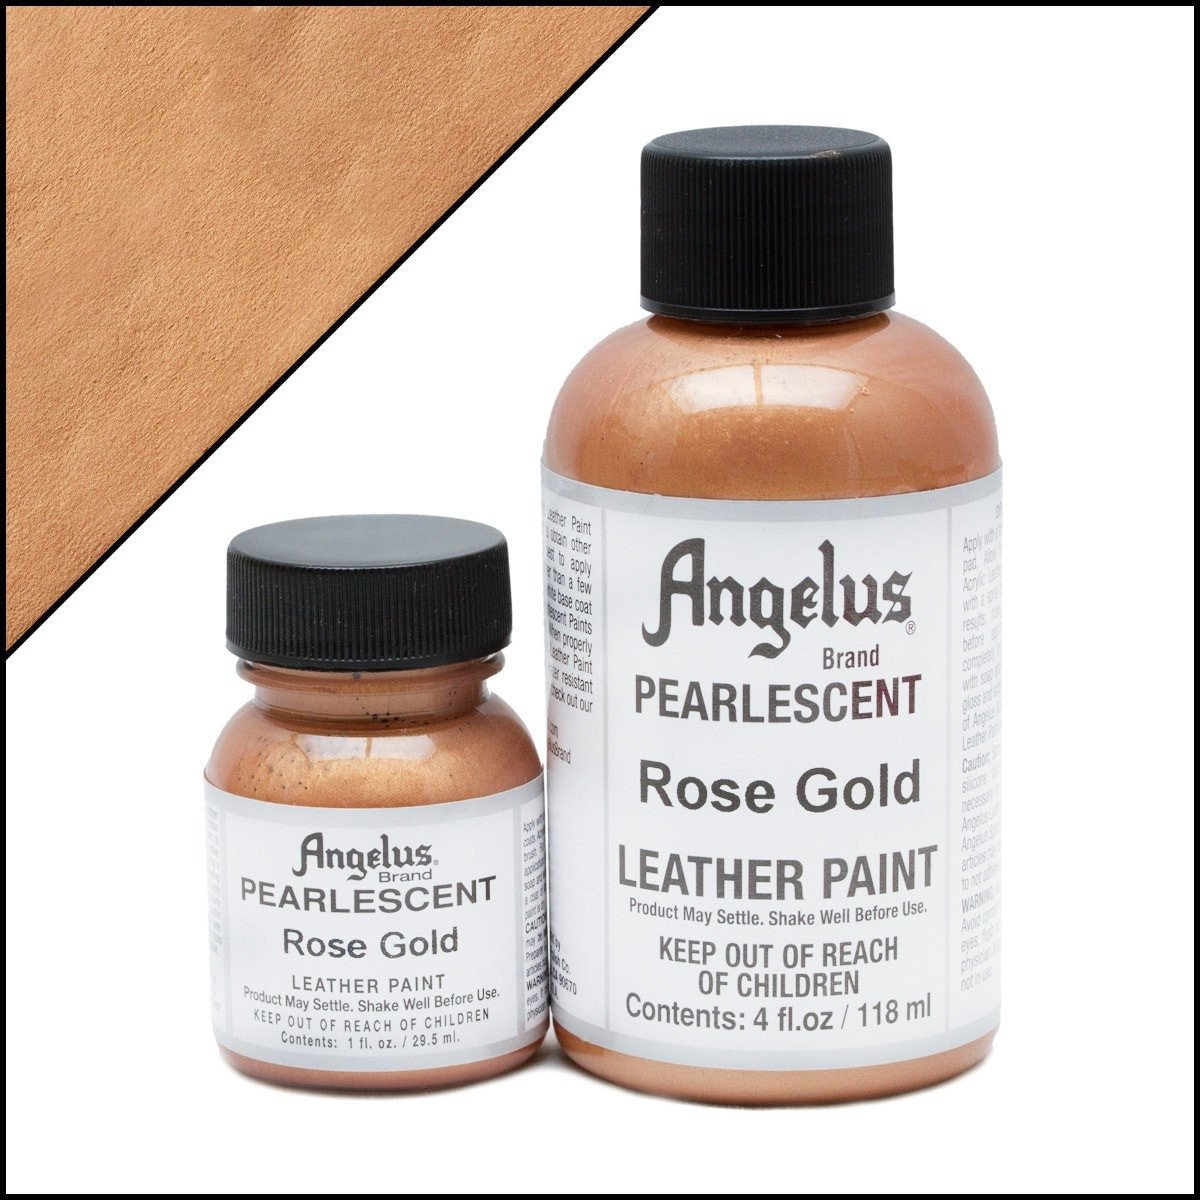 Angelus Pearlescent Rose Gold Paint